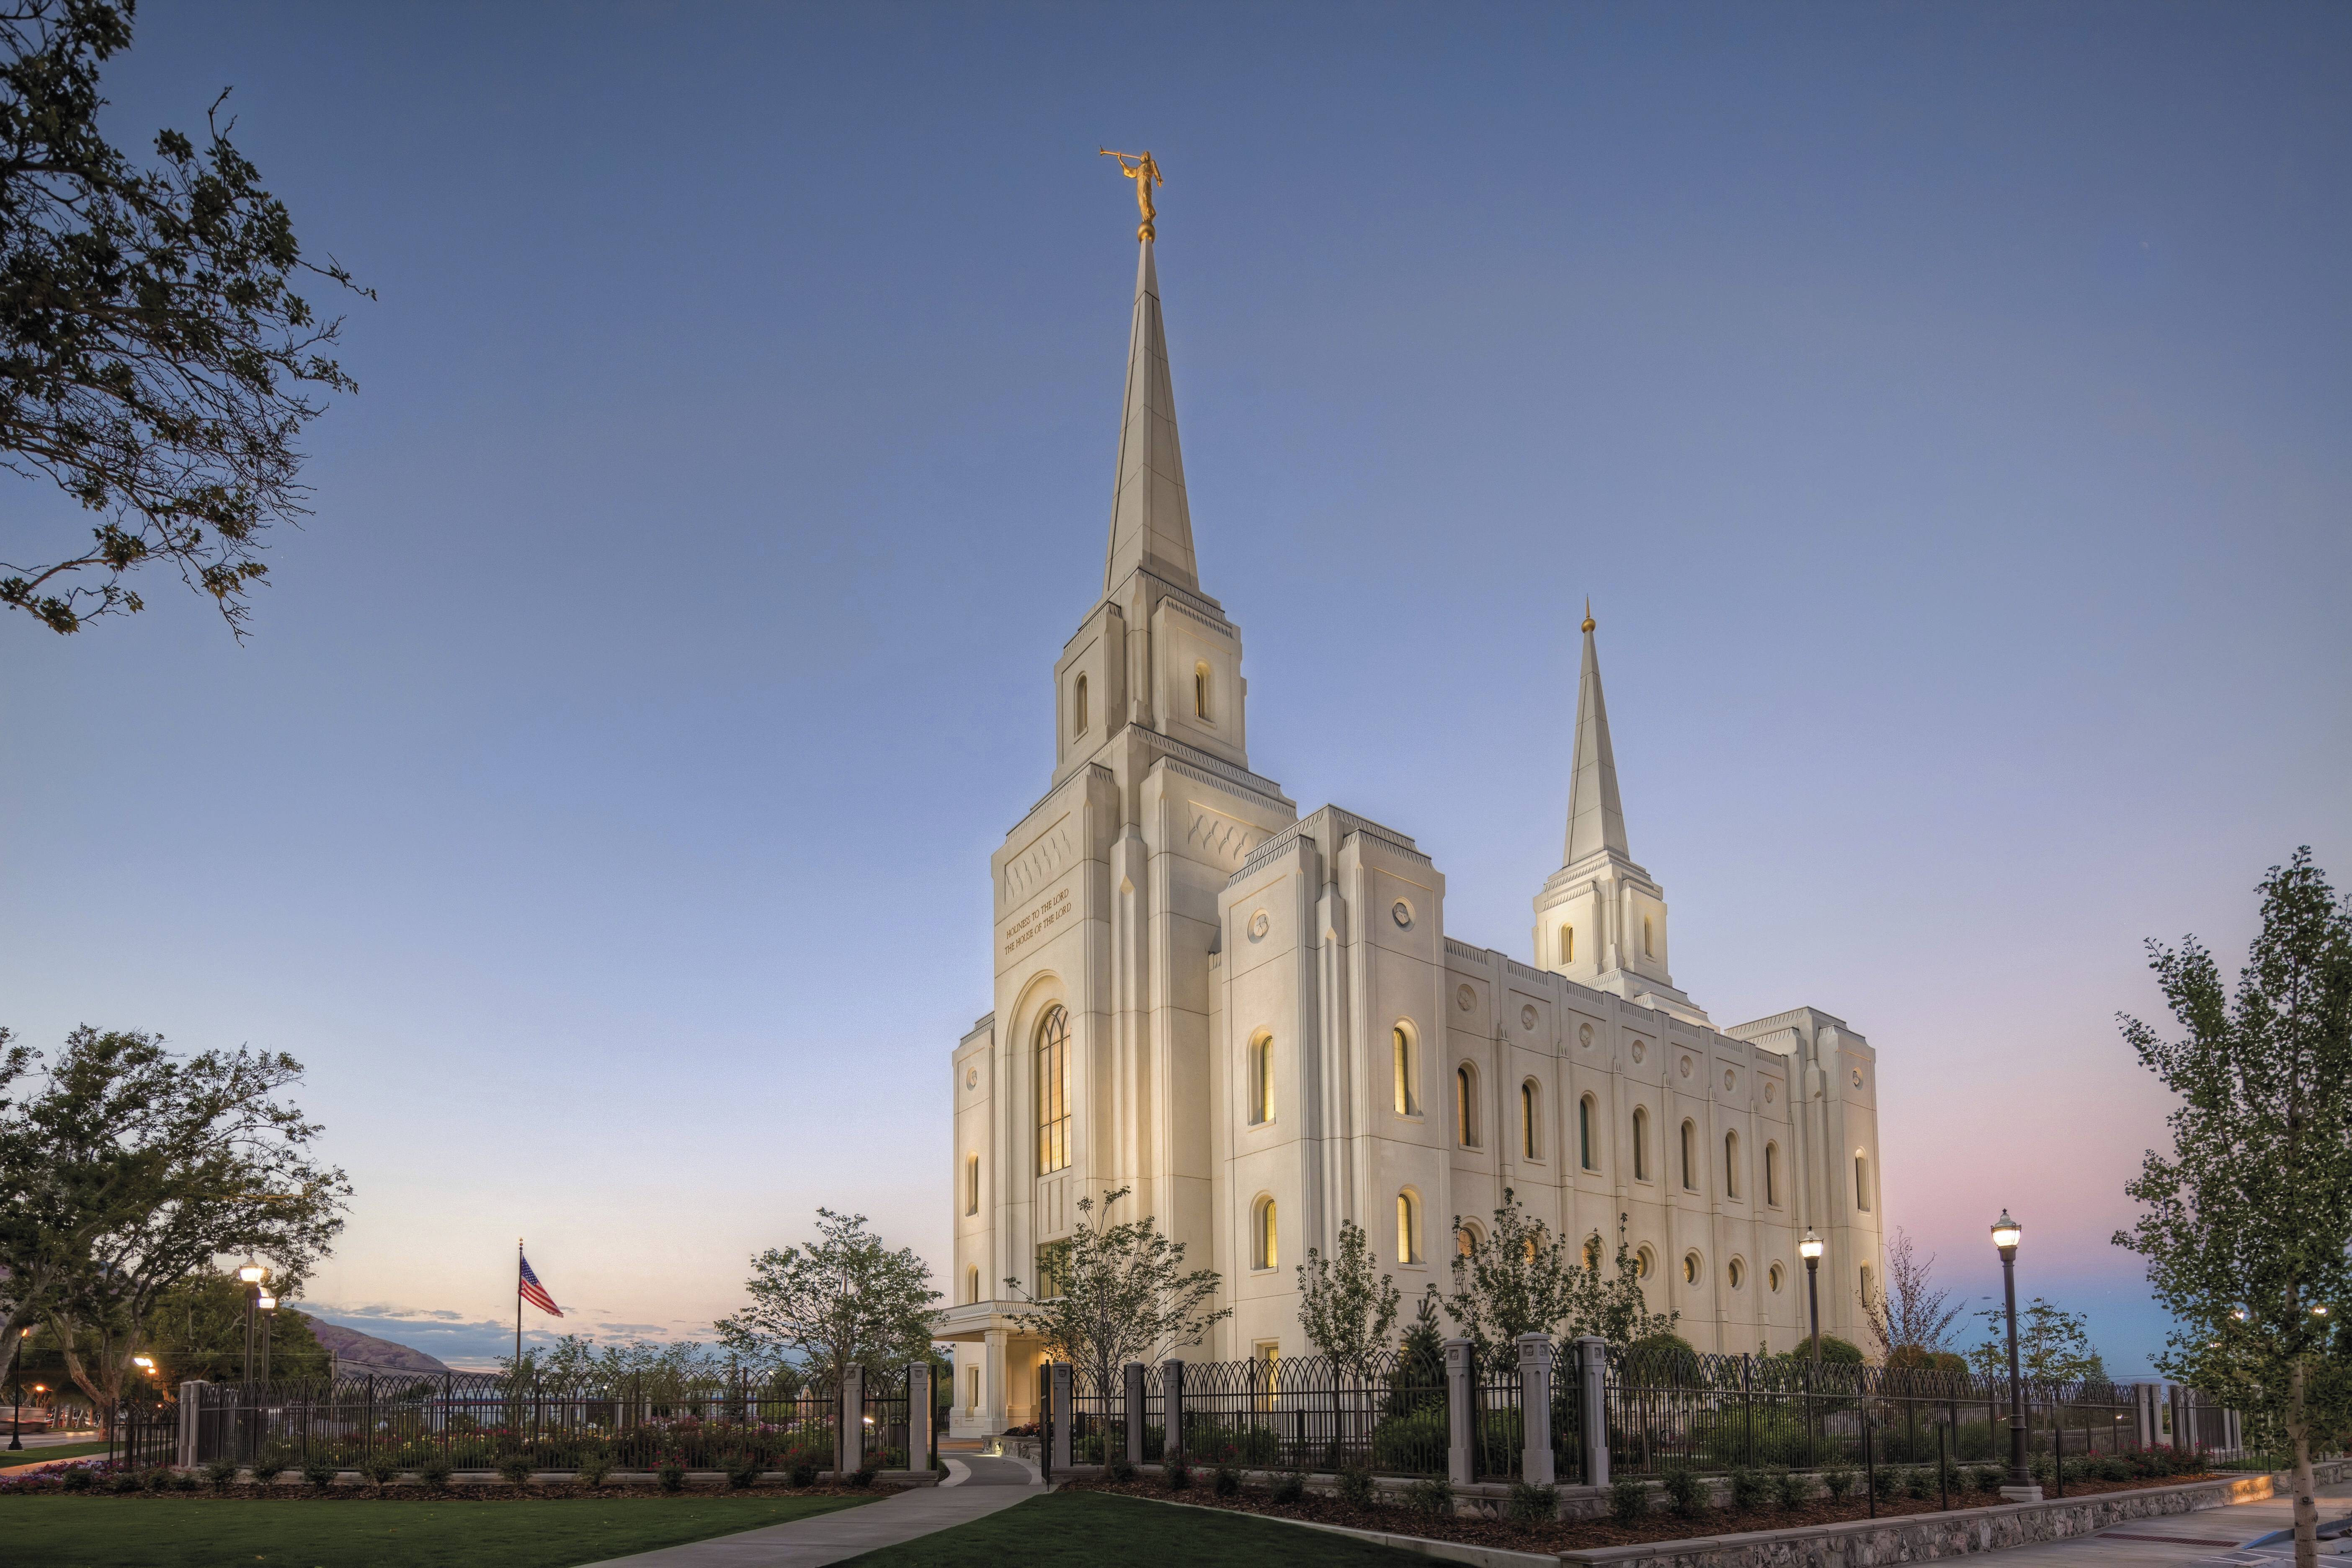 The Brigham City Utah Temple lit up in the evening, including scenery.